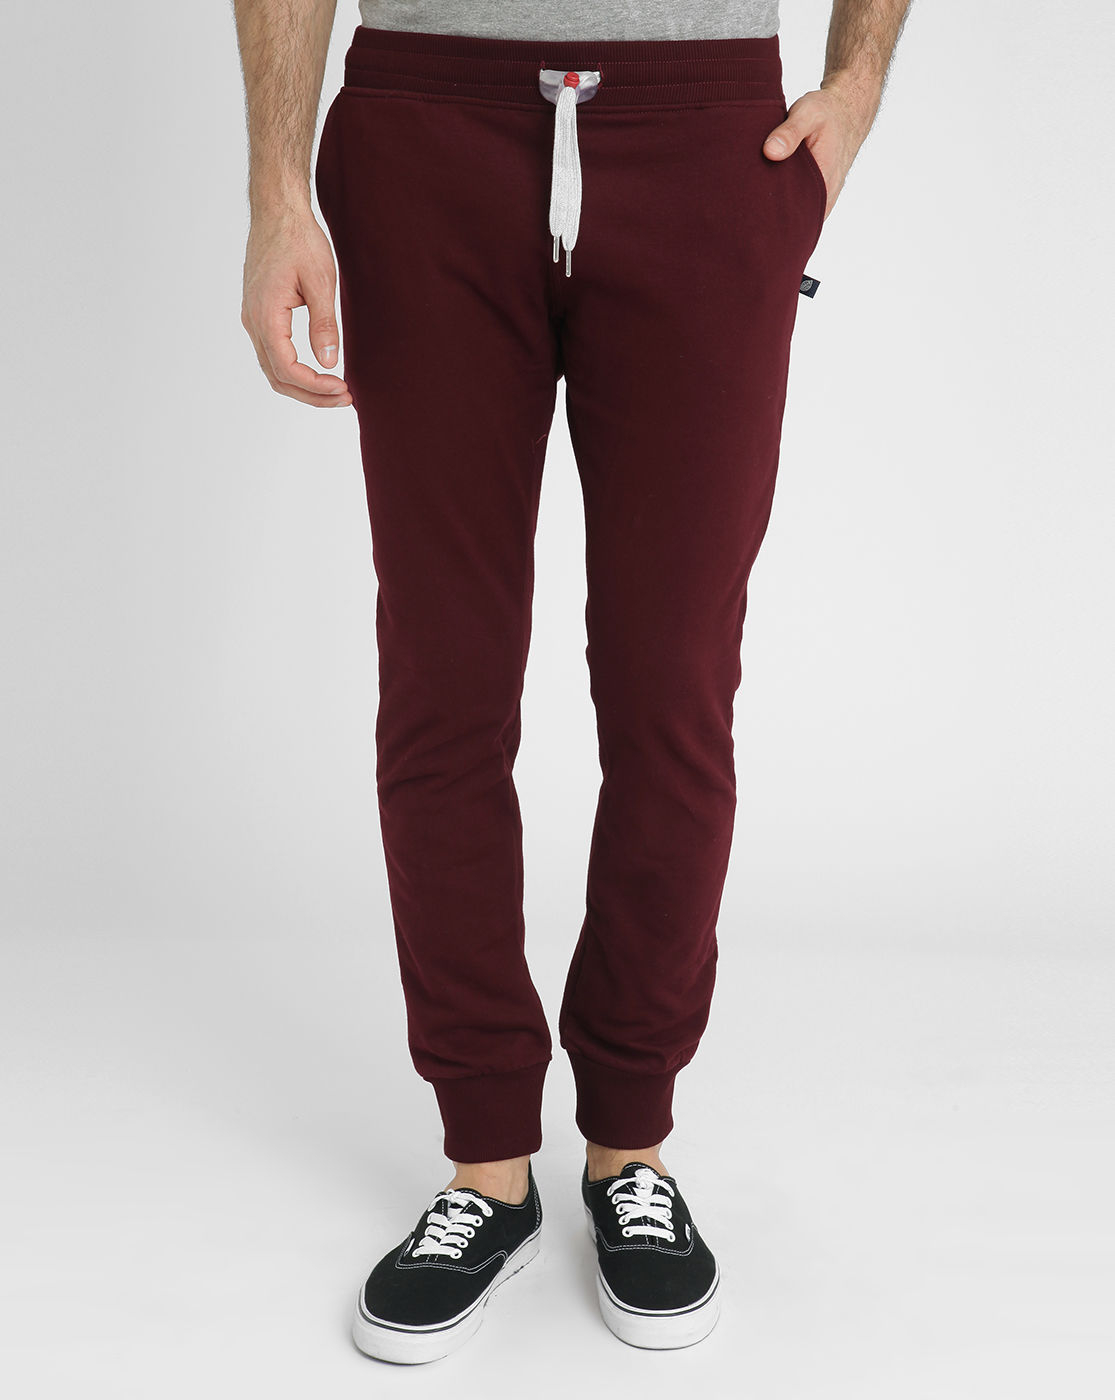 Fantastic Womens 3947 Brand Burgundy Washington Redskins Pep Rally Pants